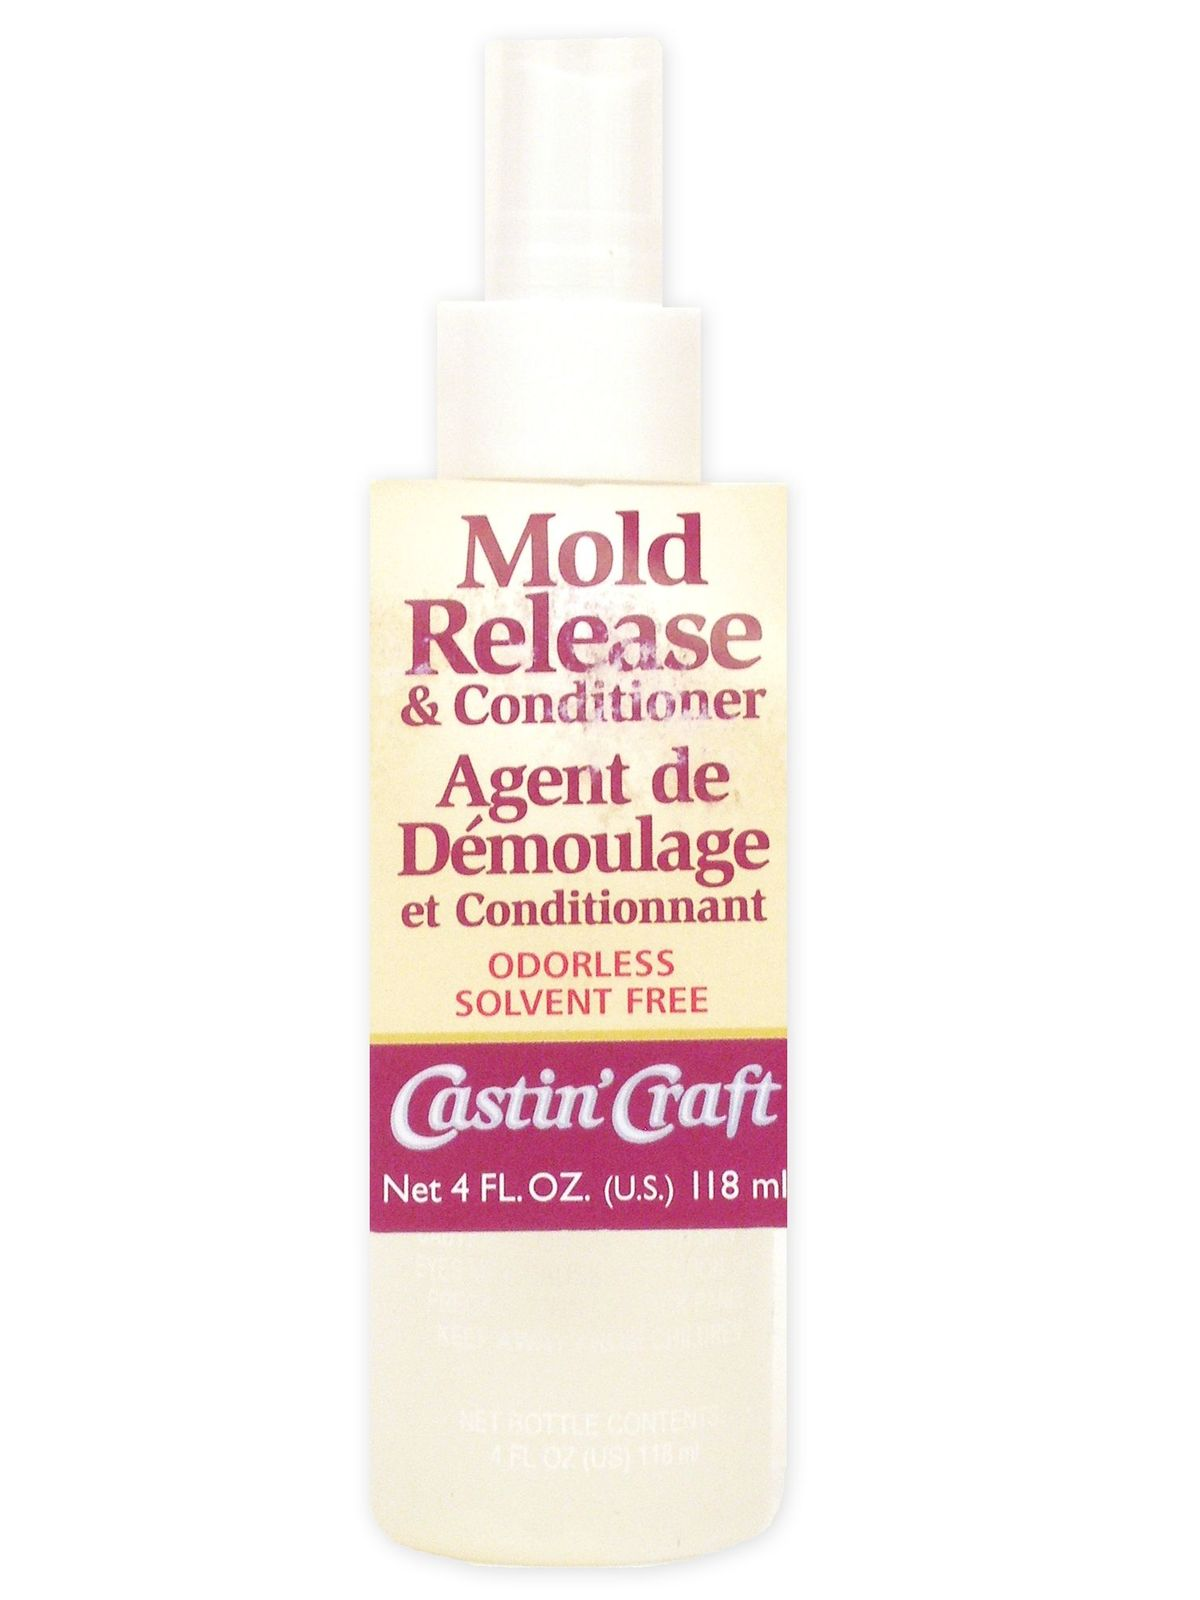 Mold Release & Conditioner